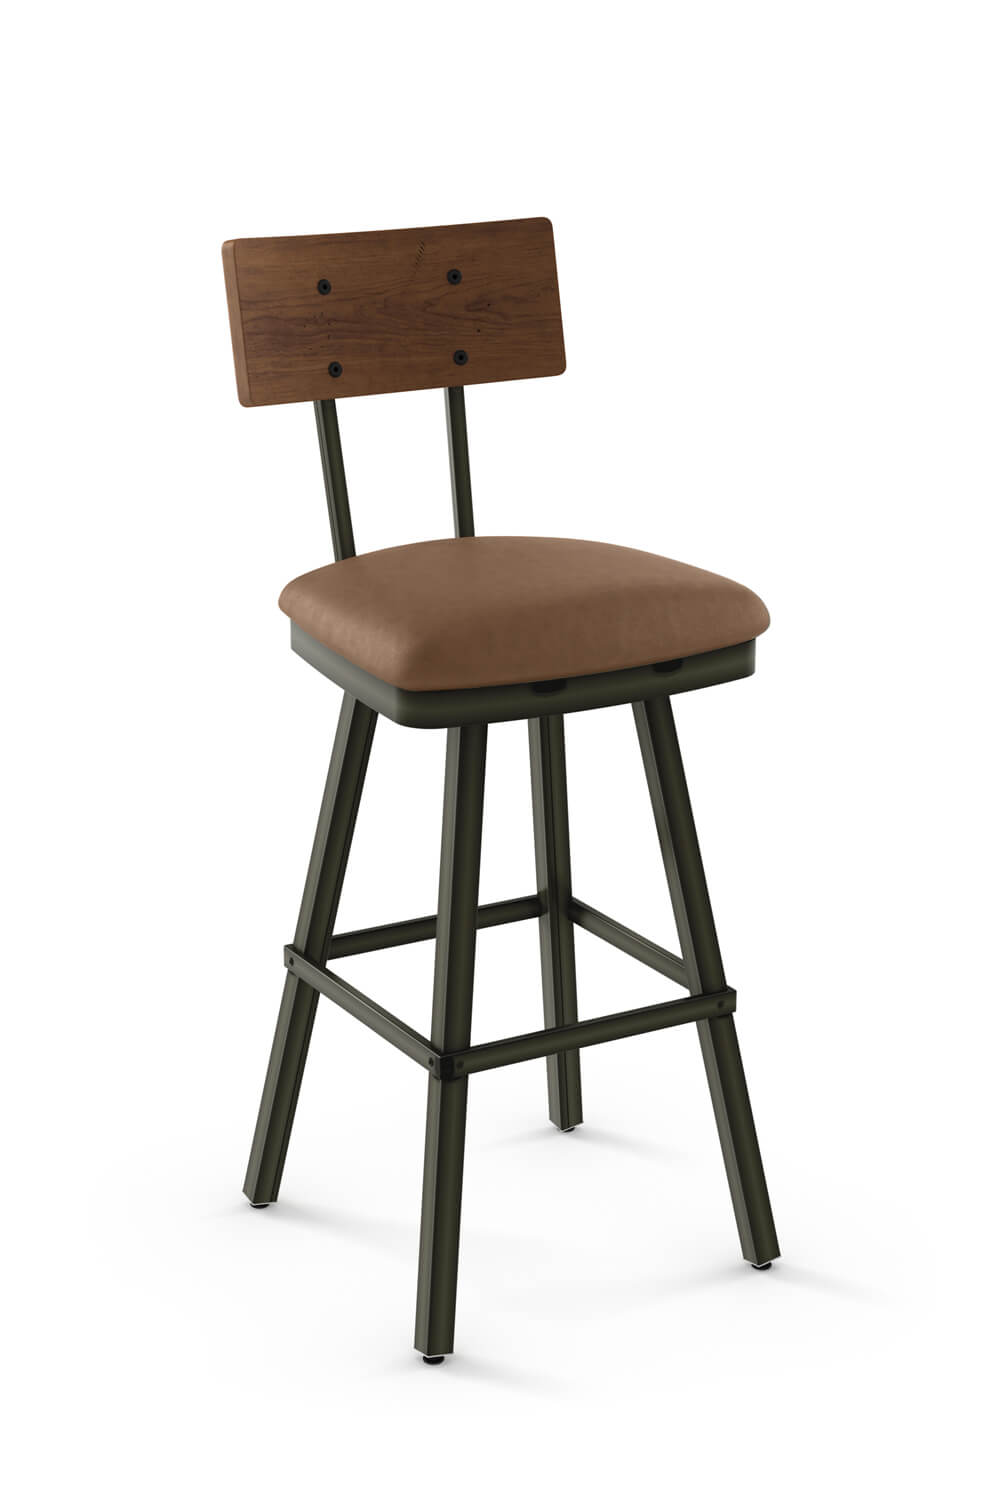 Strange Jetson Swivel Stool Distressed Wood Back Seat Cushion Alphanode Cool Chair Designs And Ideas Alphanodeonline